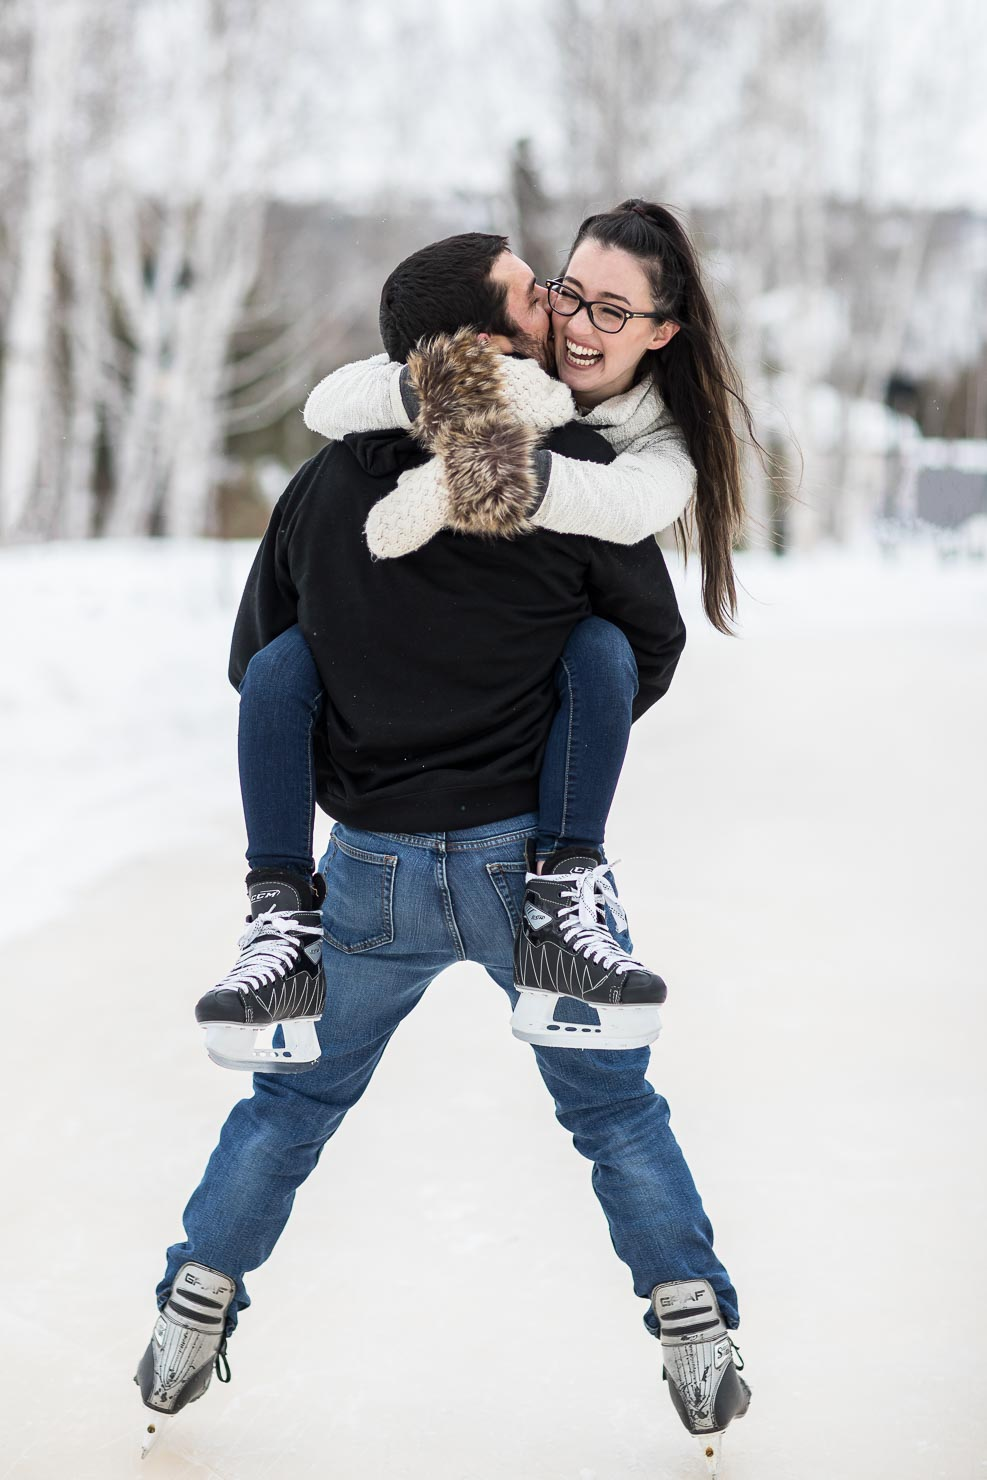 engagement, akaiserphoto, wedding photographer, kuppajo, sudbury ontario